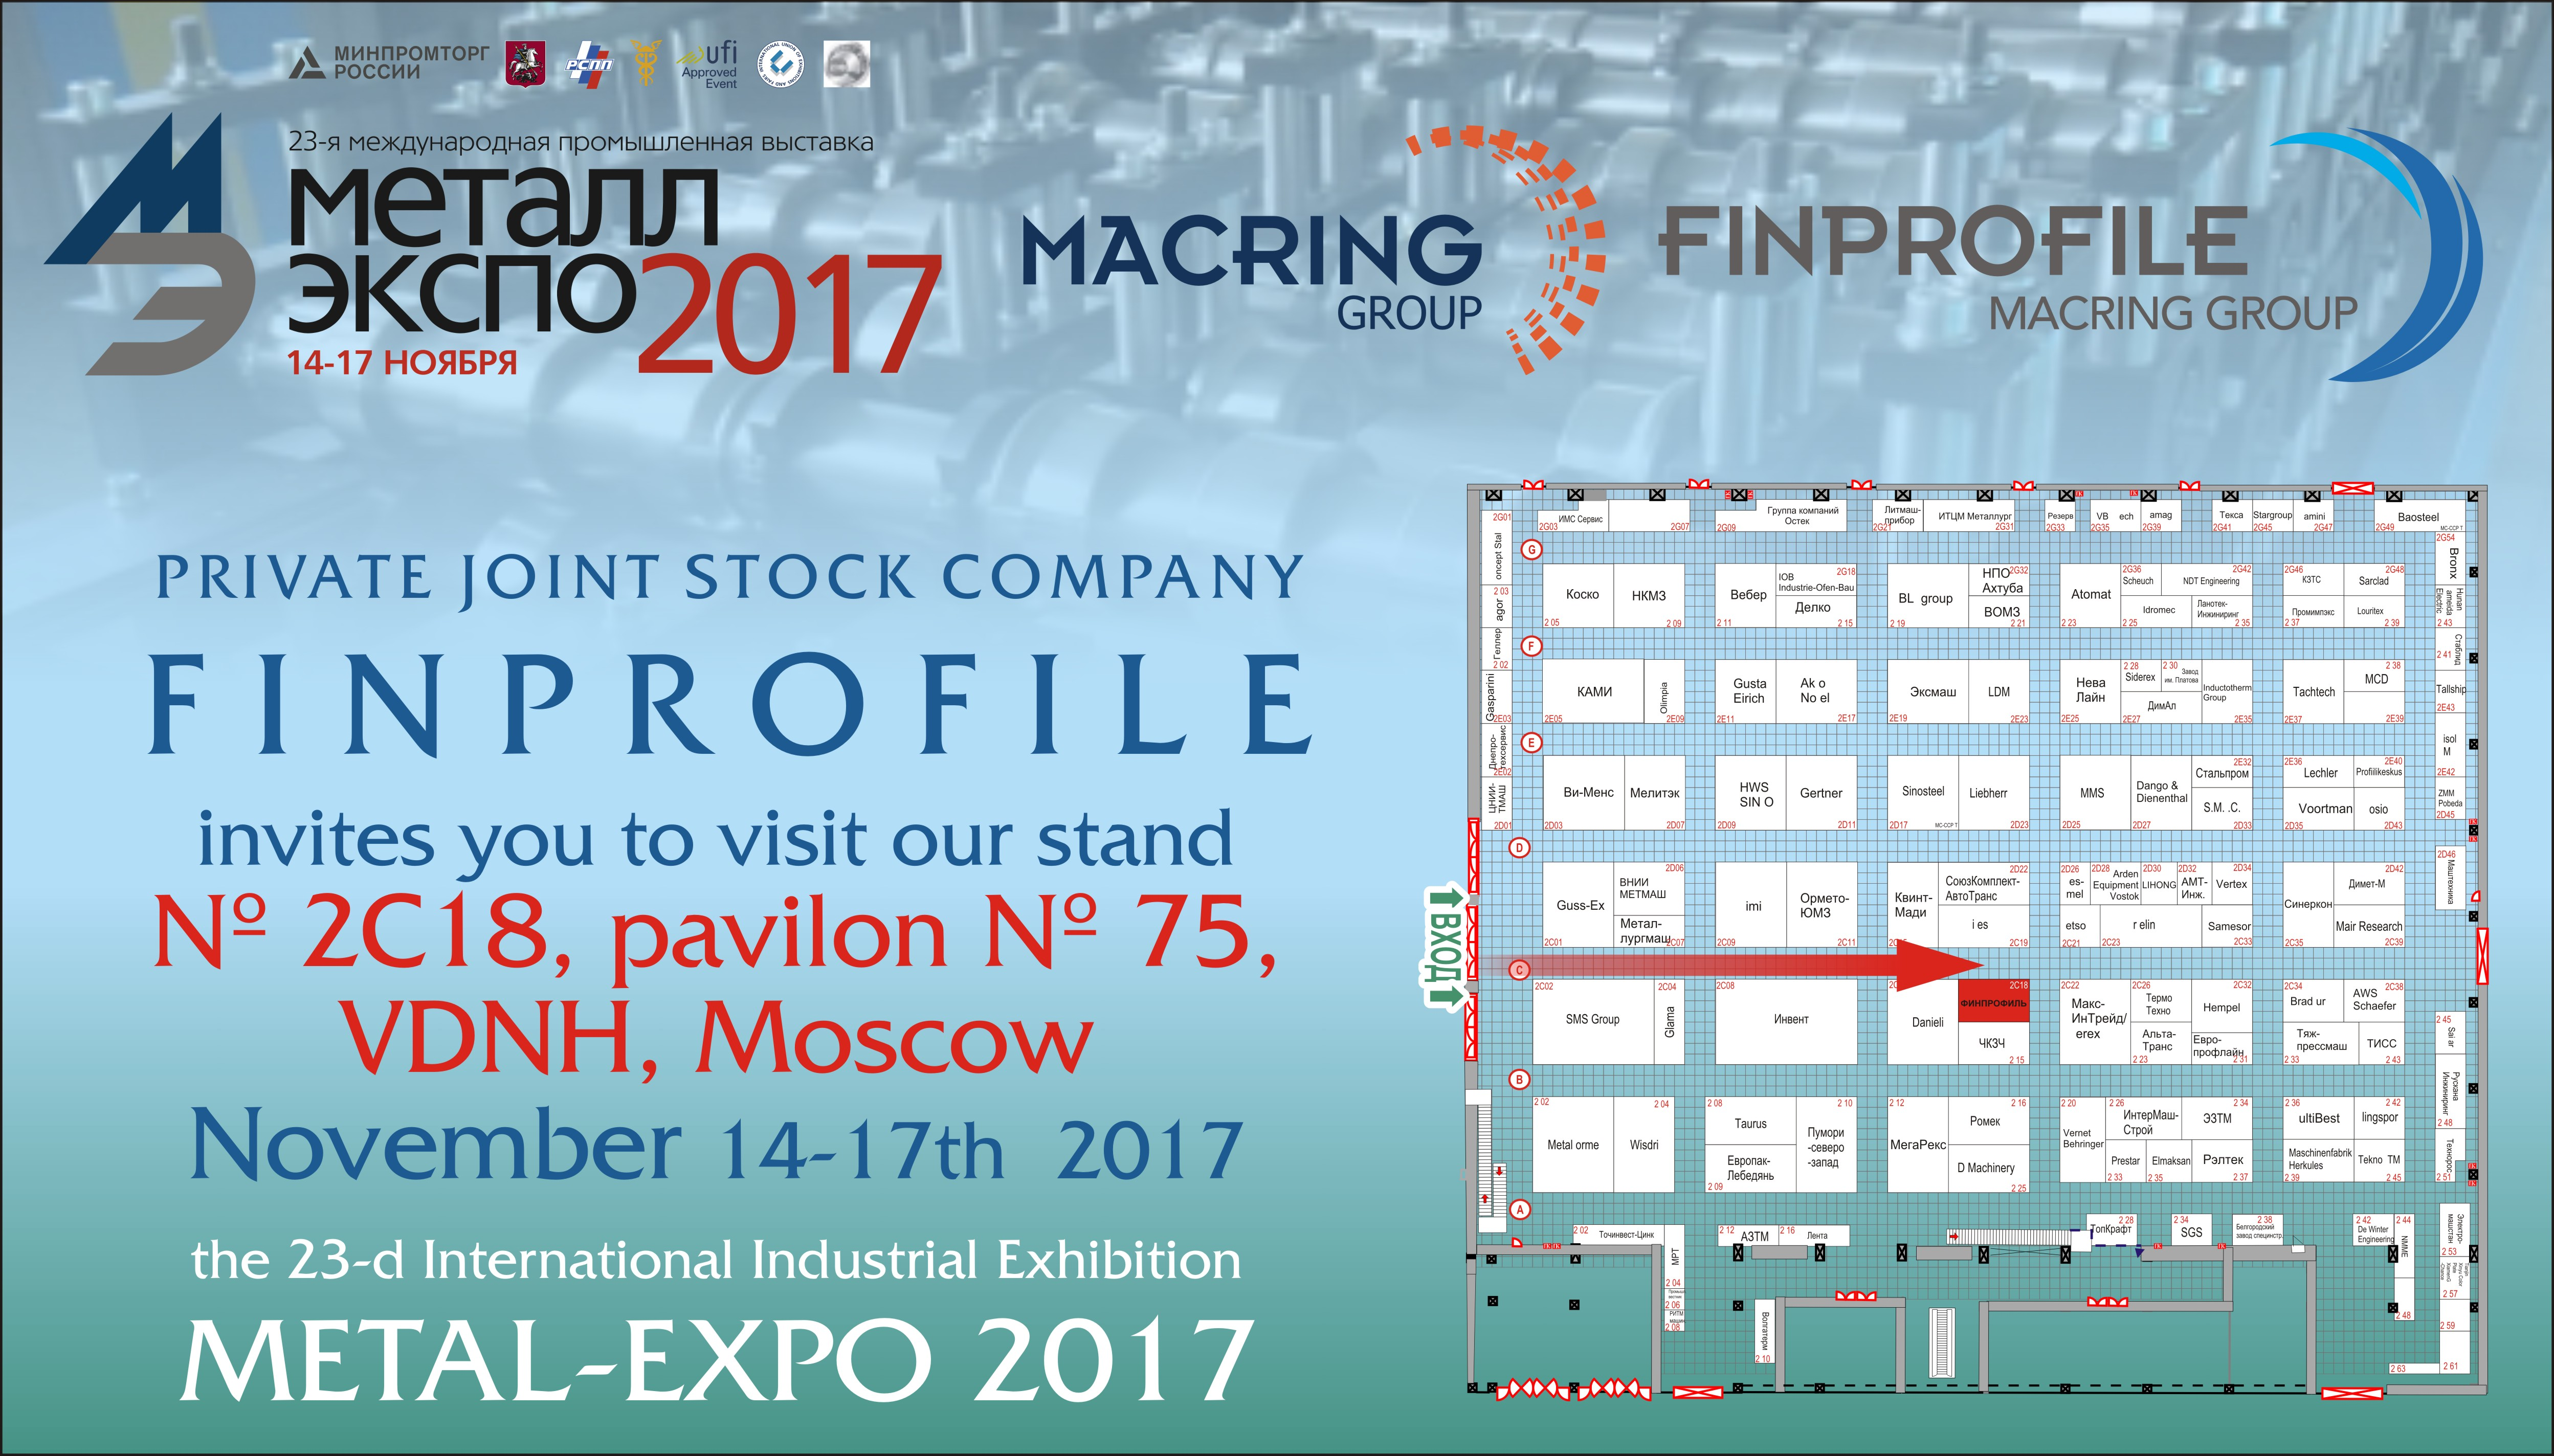 finpfile_metall_expo_2017